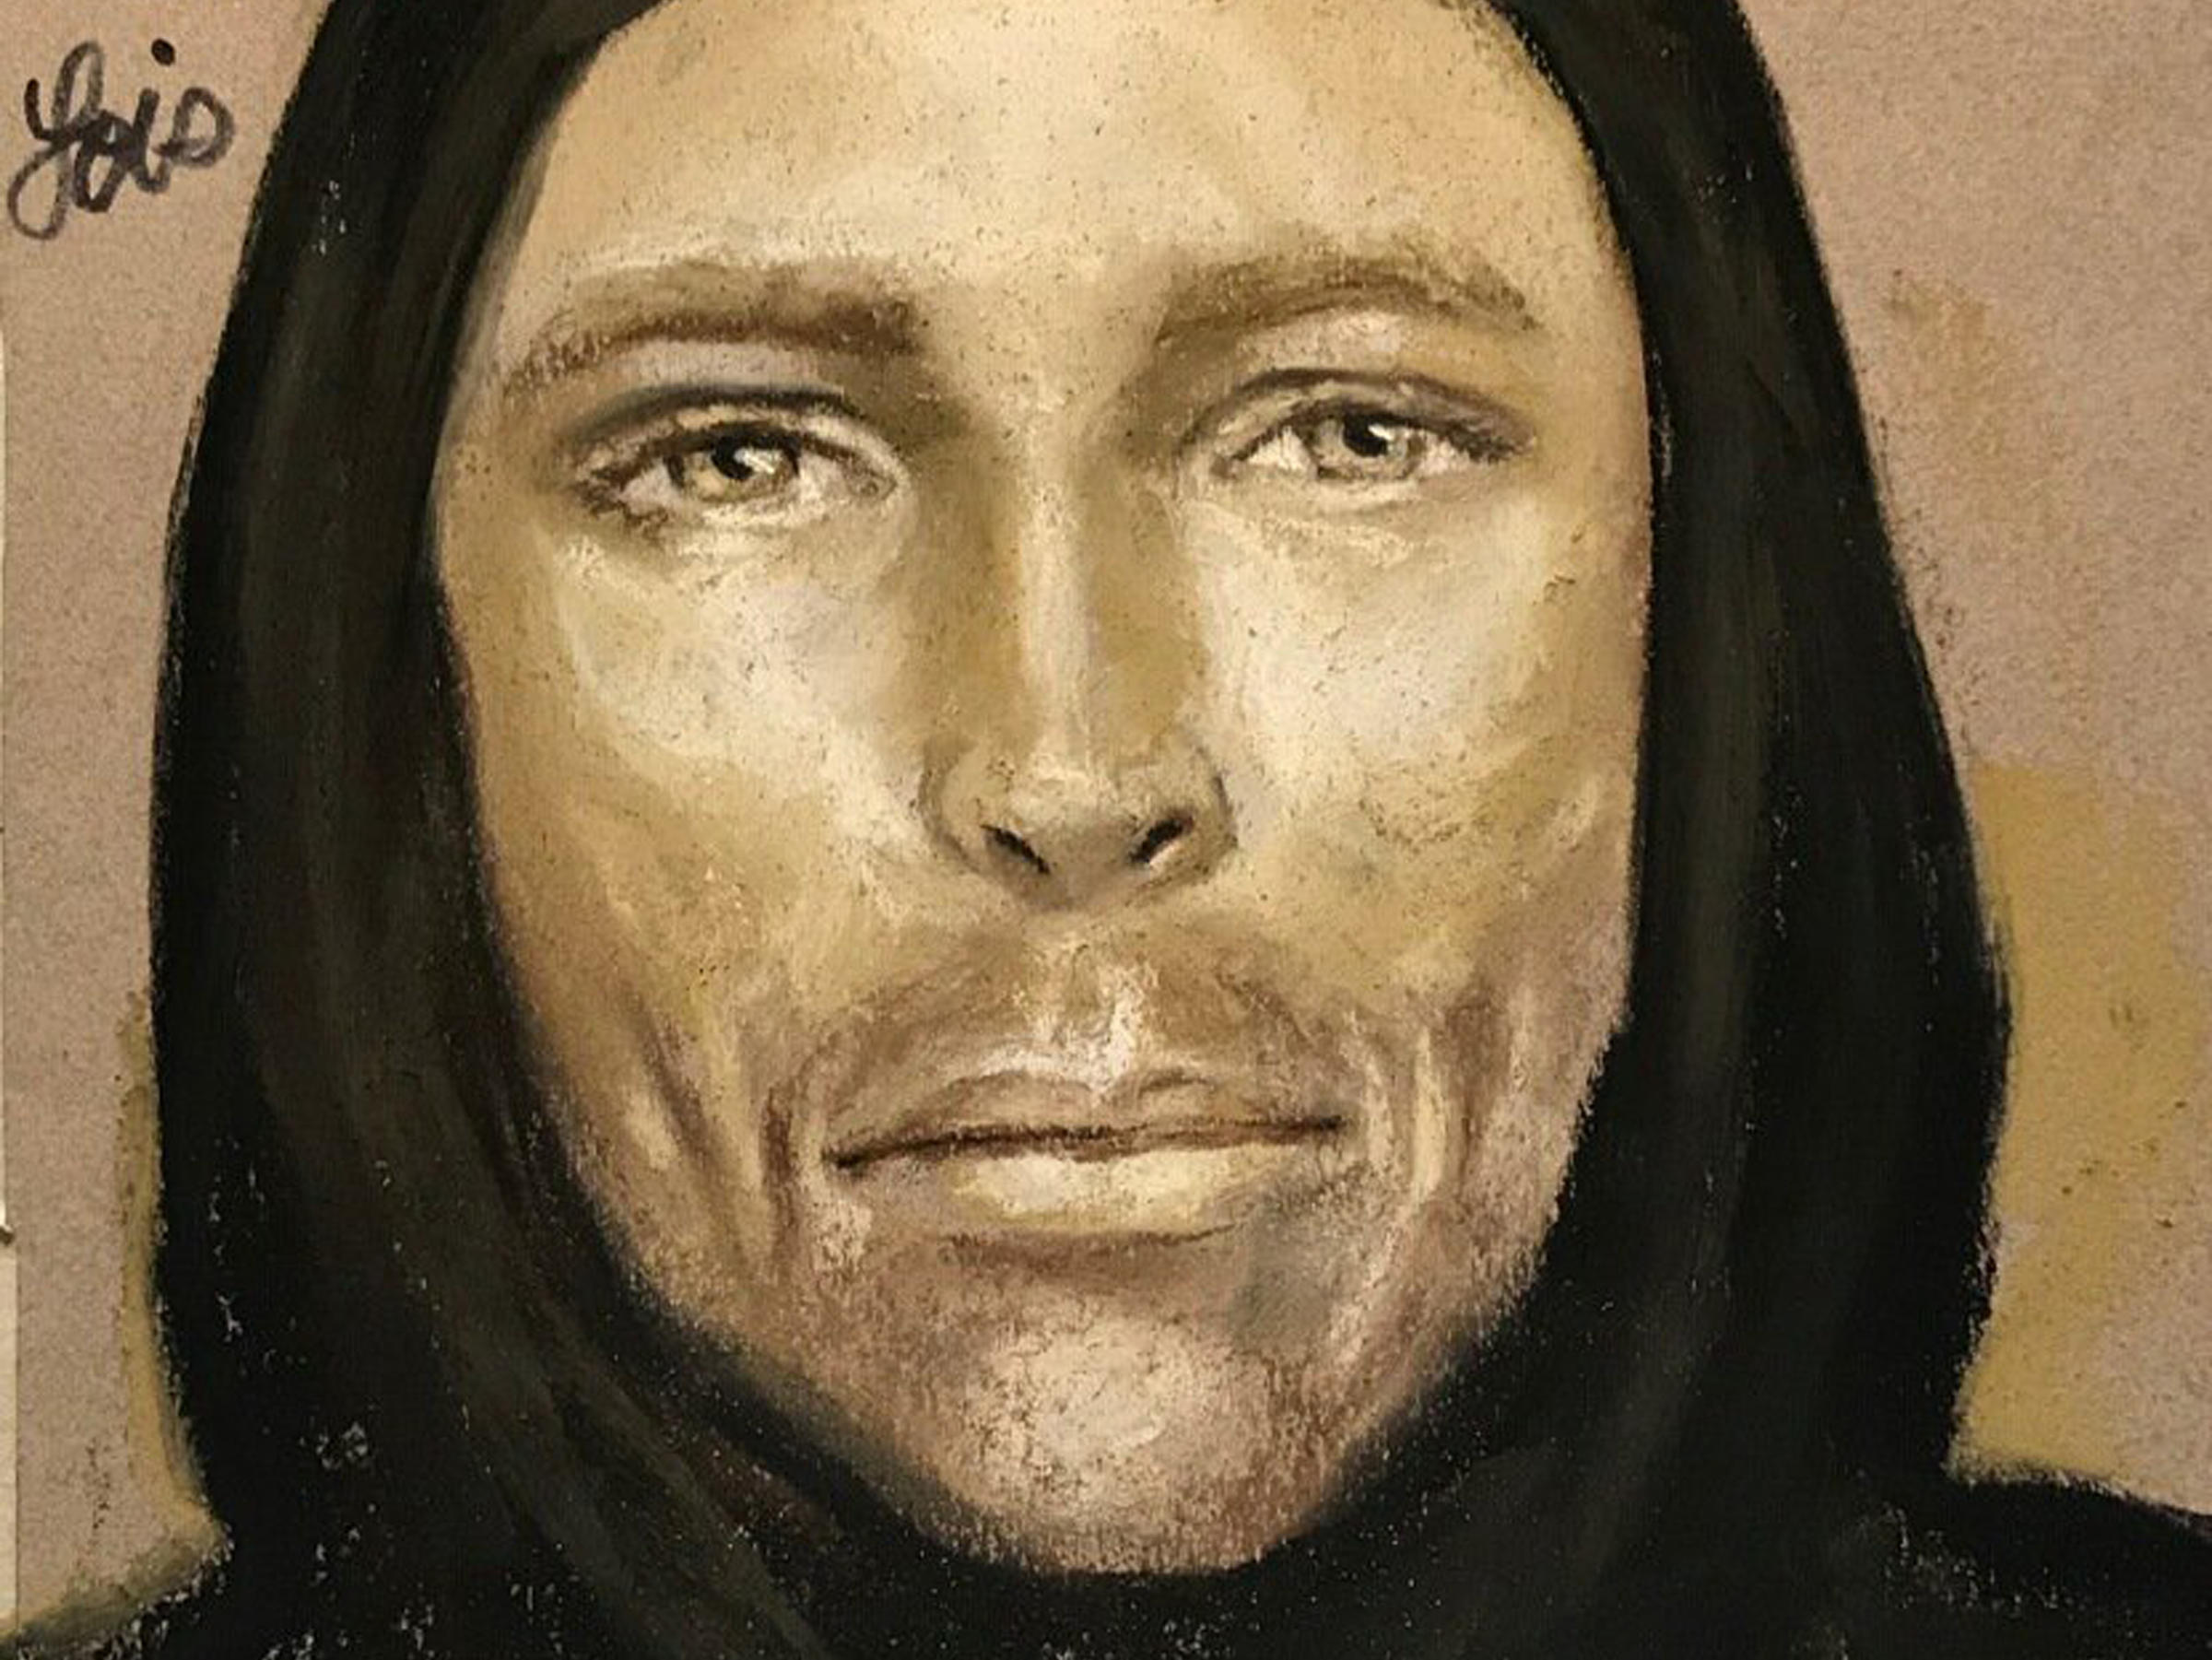 This sketch provided by the Harris County Sheriff's Office in Houston Texas shows an artist's rendition of the suspect in the fatal shooting of 7-year-old Jazmine Barnes on Sunday in Houston